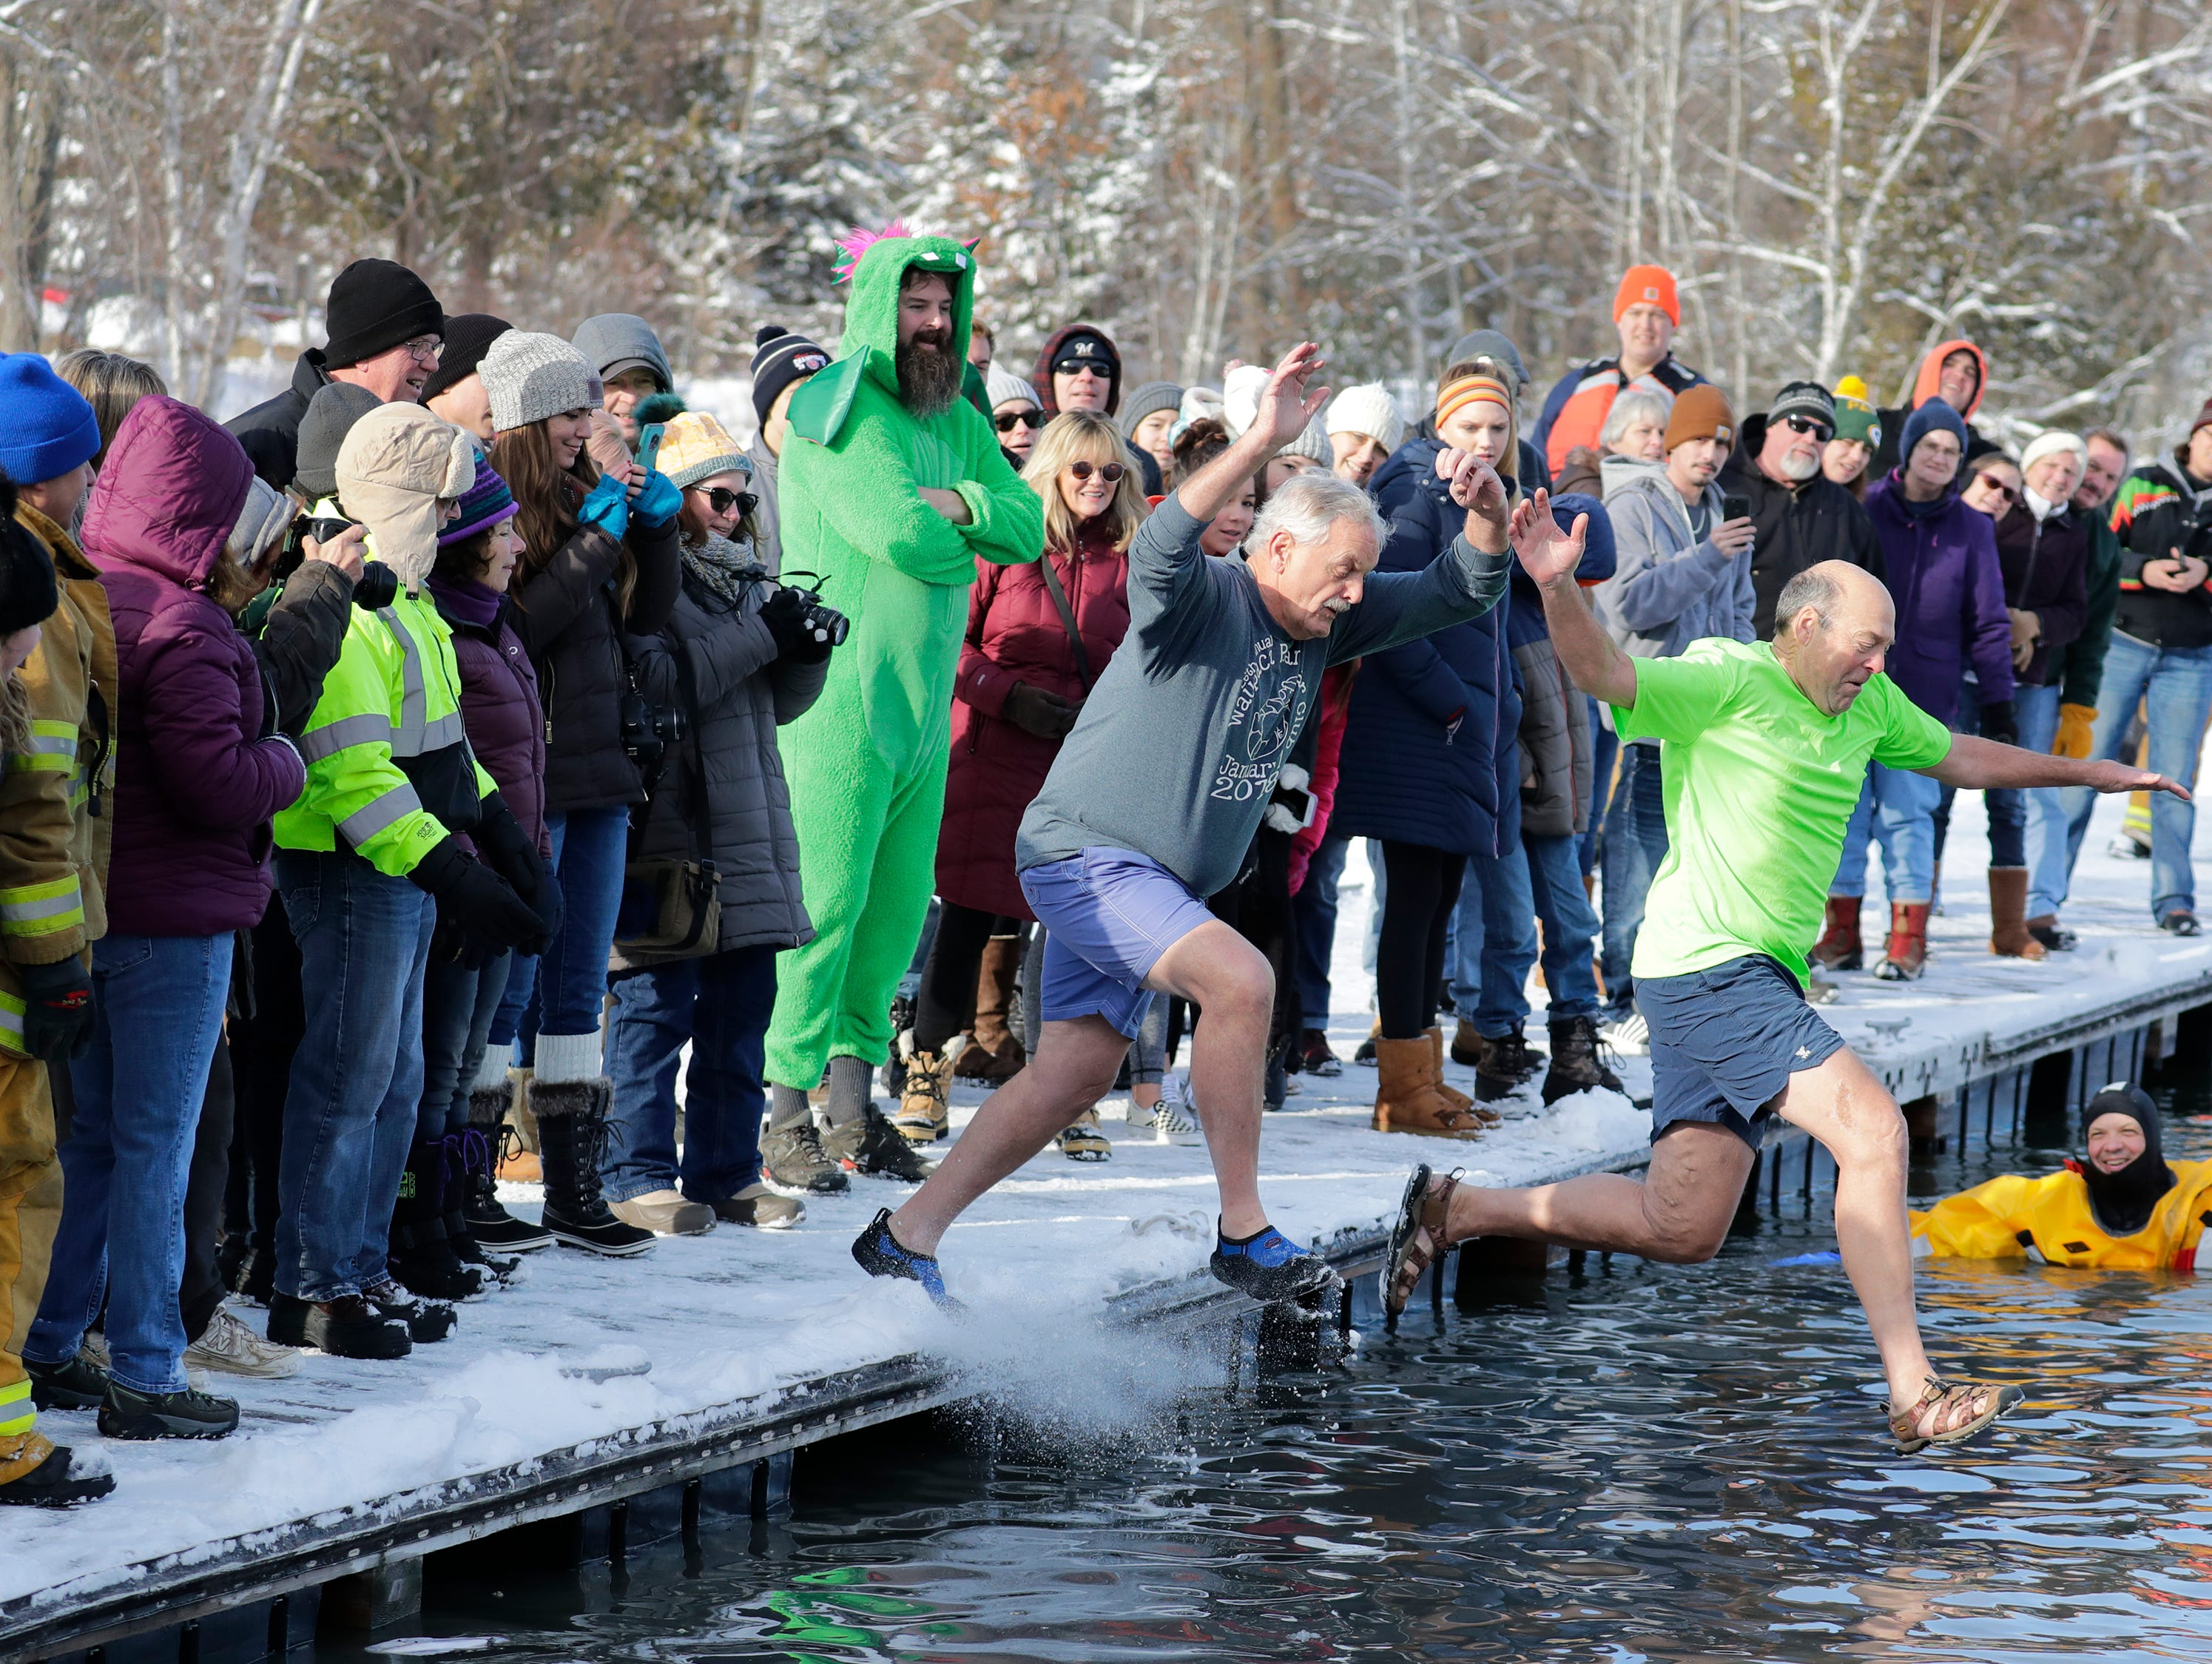 Joe Farmer, left, of Wausau and Larry Gordon of Waupaca jump into frigid waters together during the Polar Bear Plunge Tuesday, January 1, 2019, at Becker Marine on Lime Kiln Lake in Waupaca, Wis. 